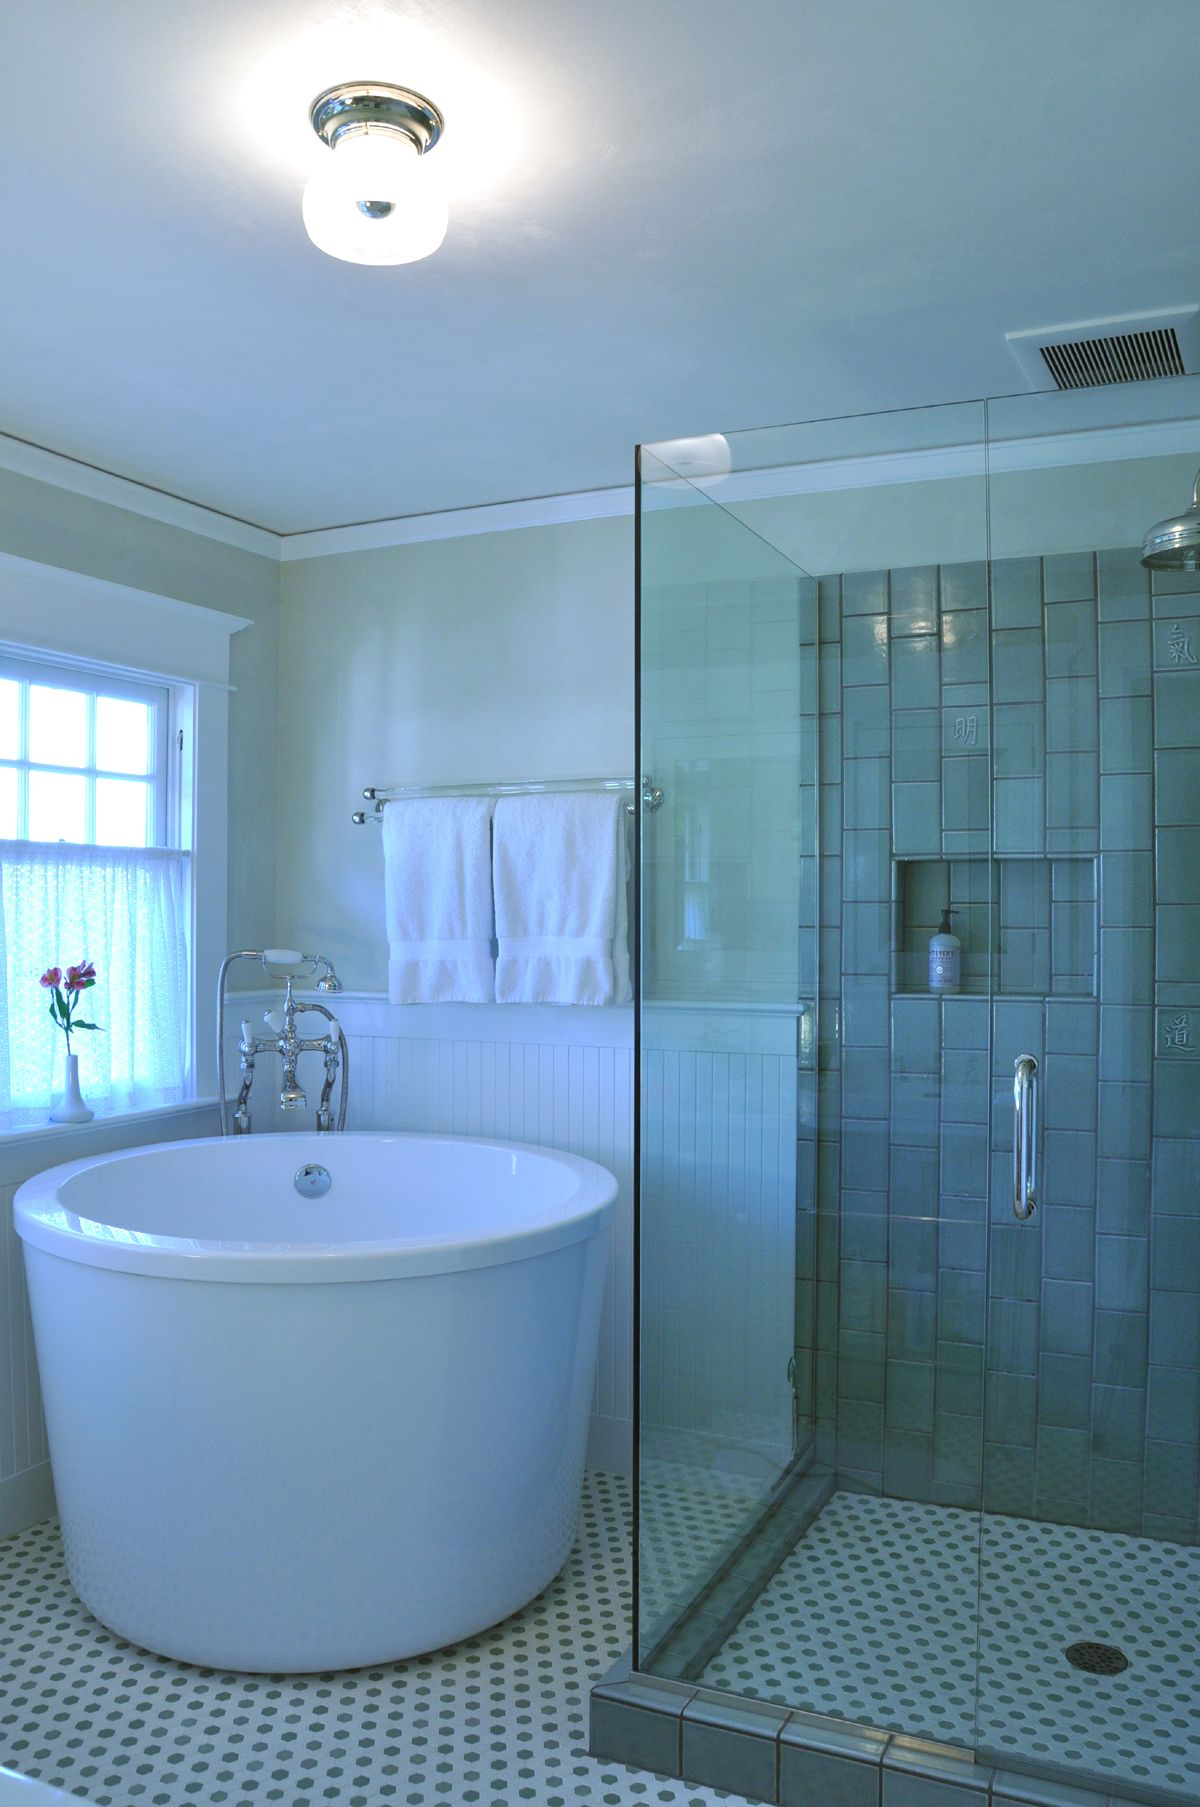 Soak Badkamer Japanese Soaking Tub In Master Bathroom For Recent Remodel Project